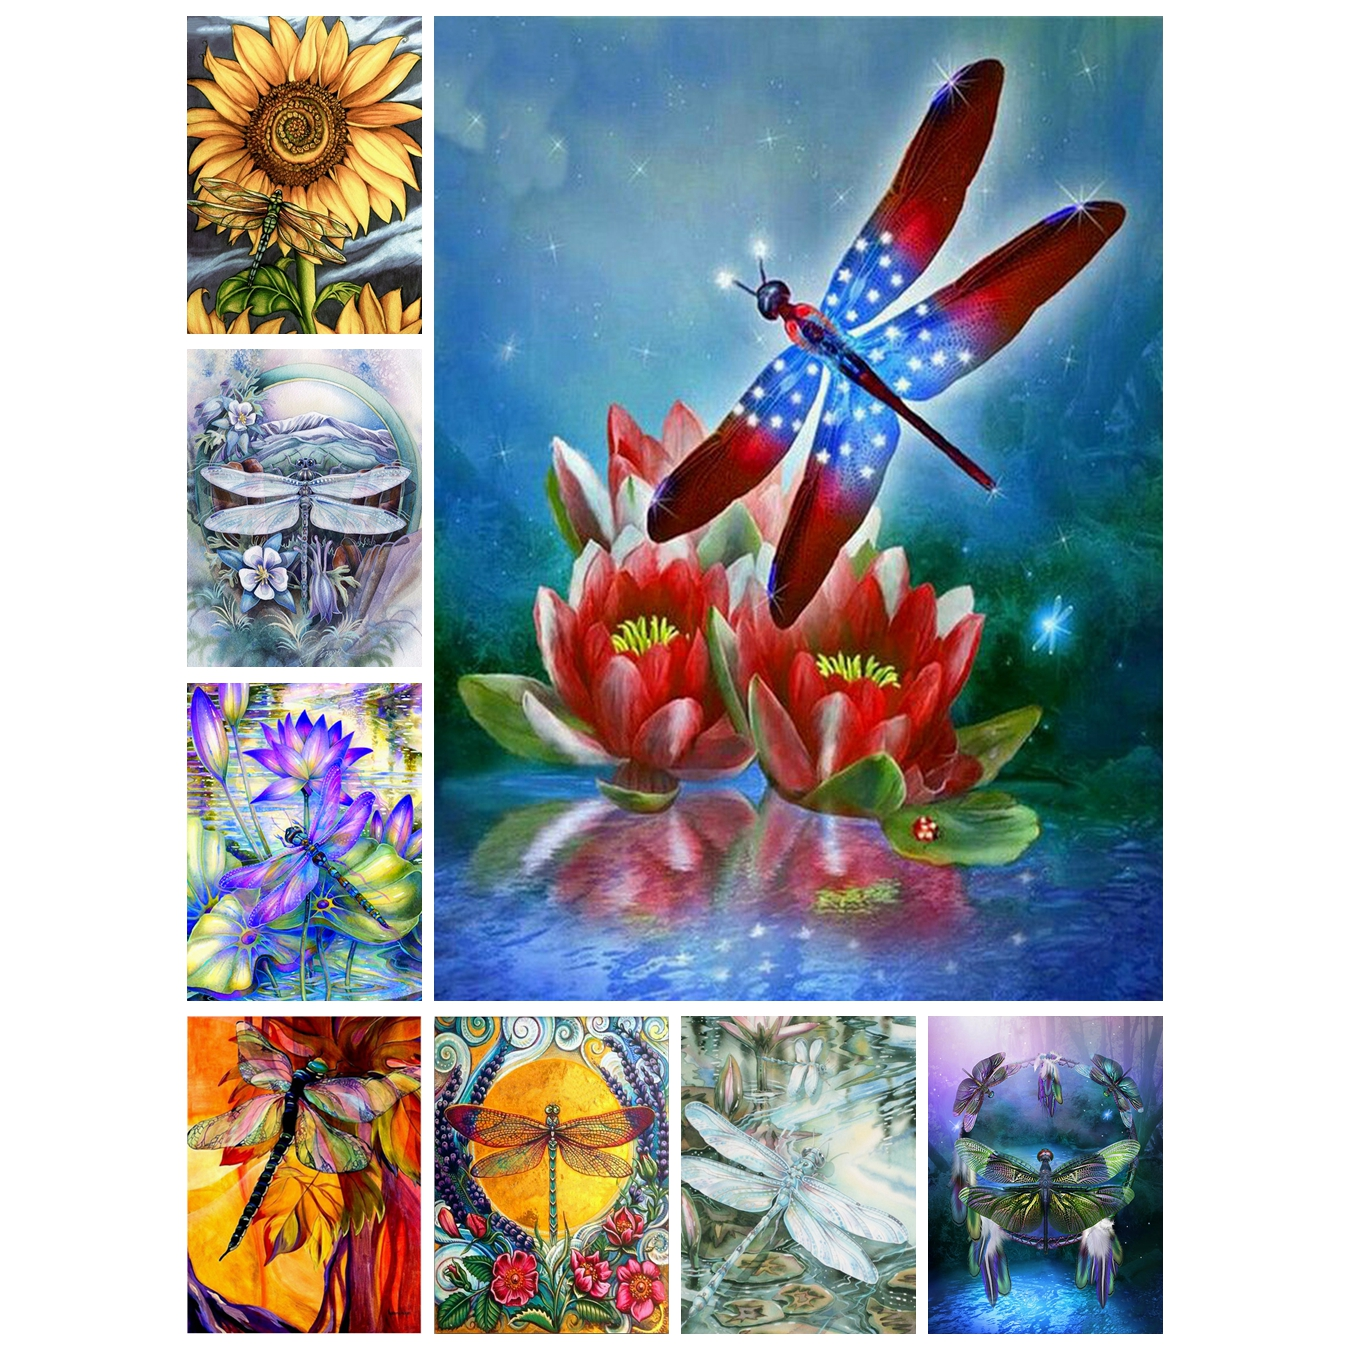 Dragonfly 5D Special Diamond Painting Kit Mosaic Embroidery for Home Decor